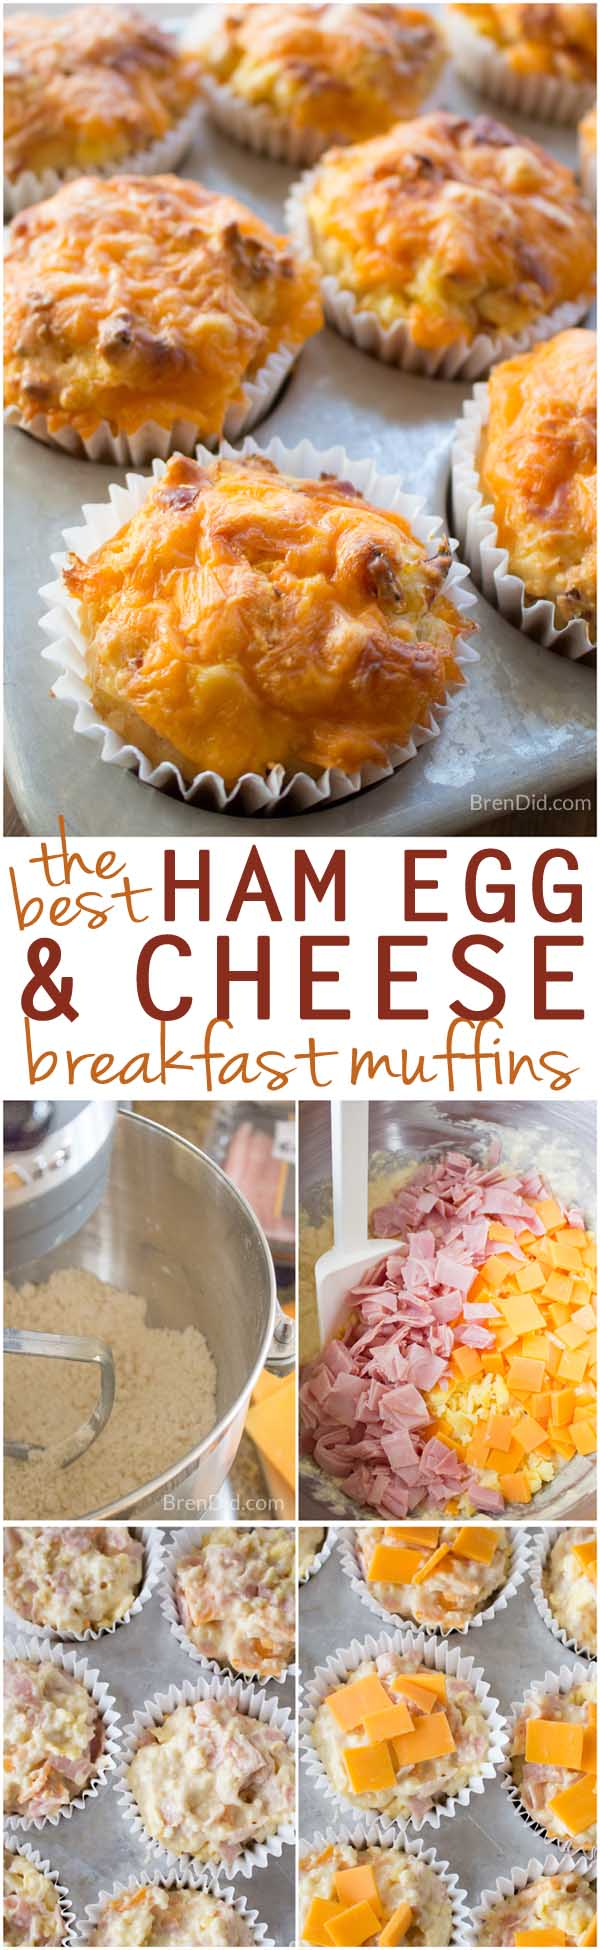 easy breakfast muffins, ham, egg, and cheese biscuits, ham and egg breakfast, easy breakfast, breakfast muffins, Perfect for busy mornings when you don't have time to cook but want to serve a hot, homemade meal. #BeyondTheSandwich ad @Walmart